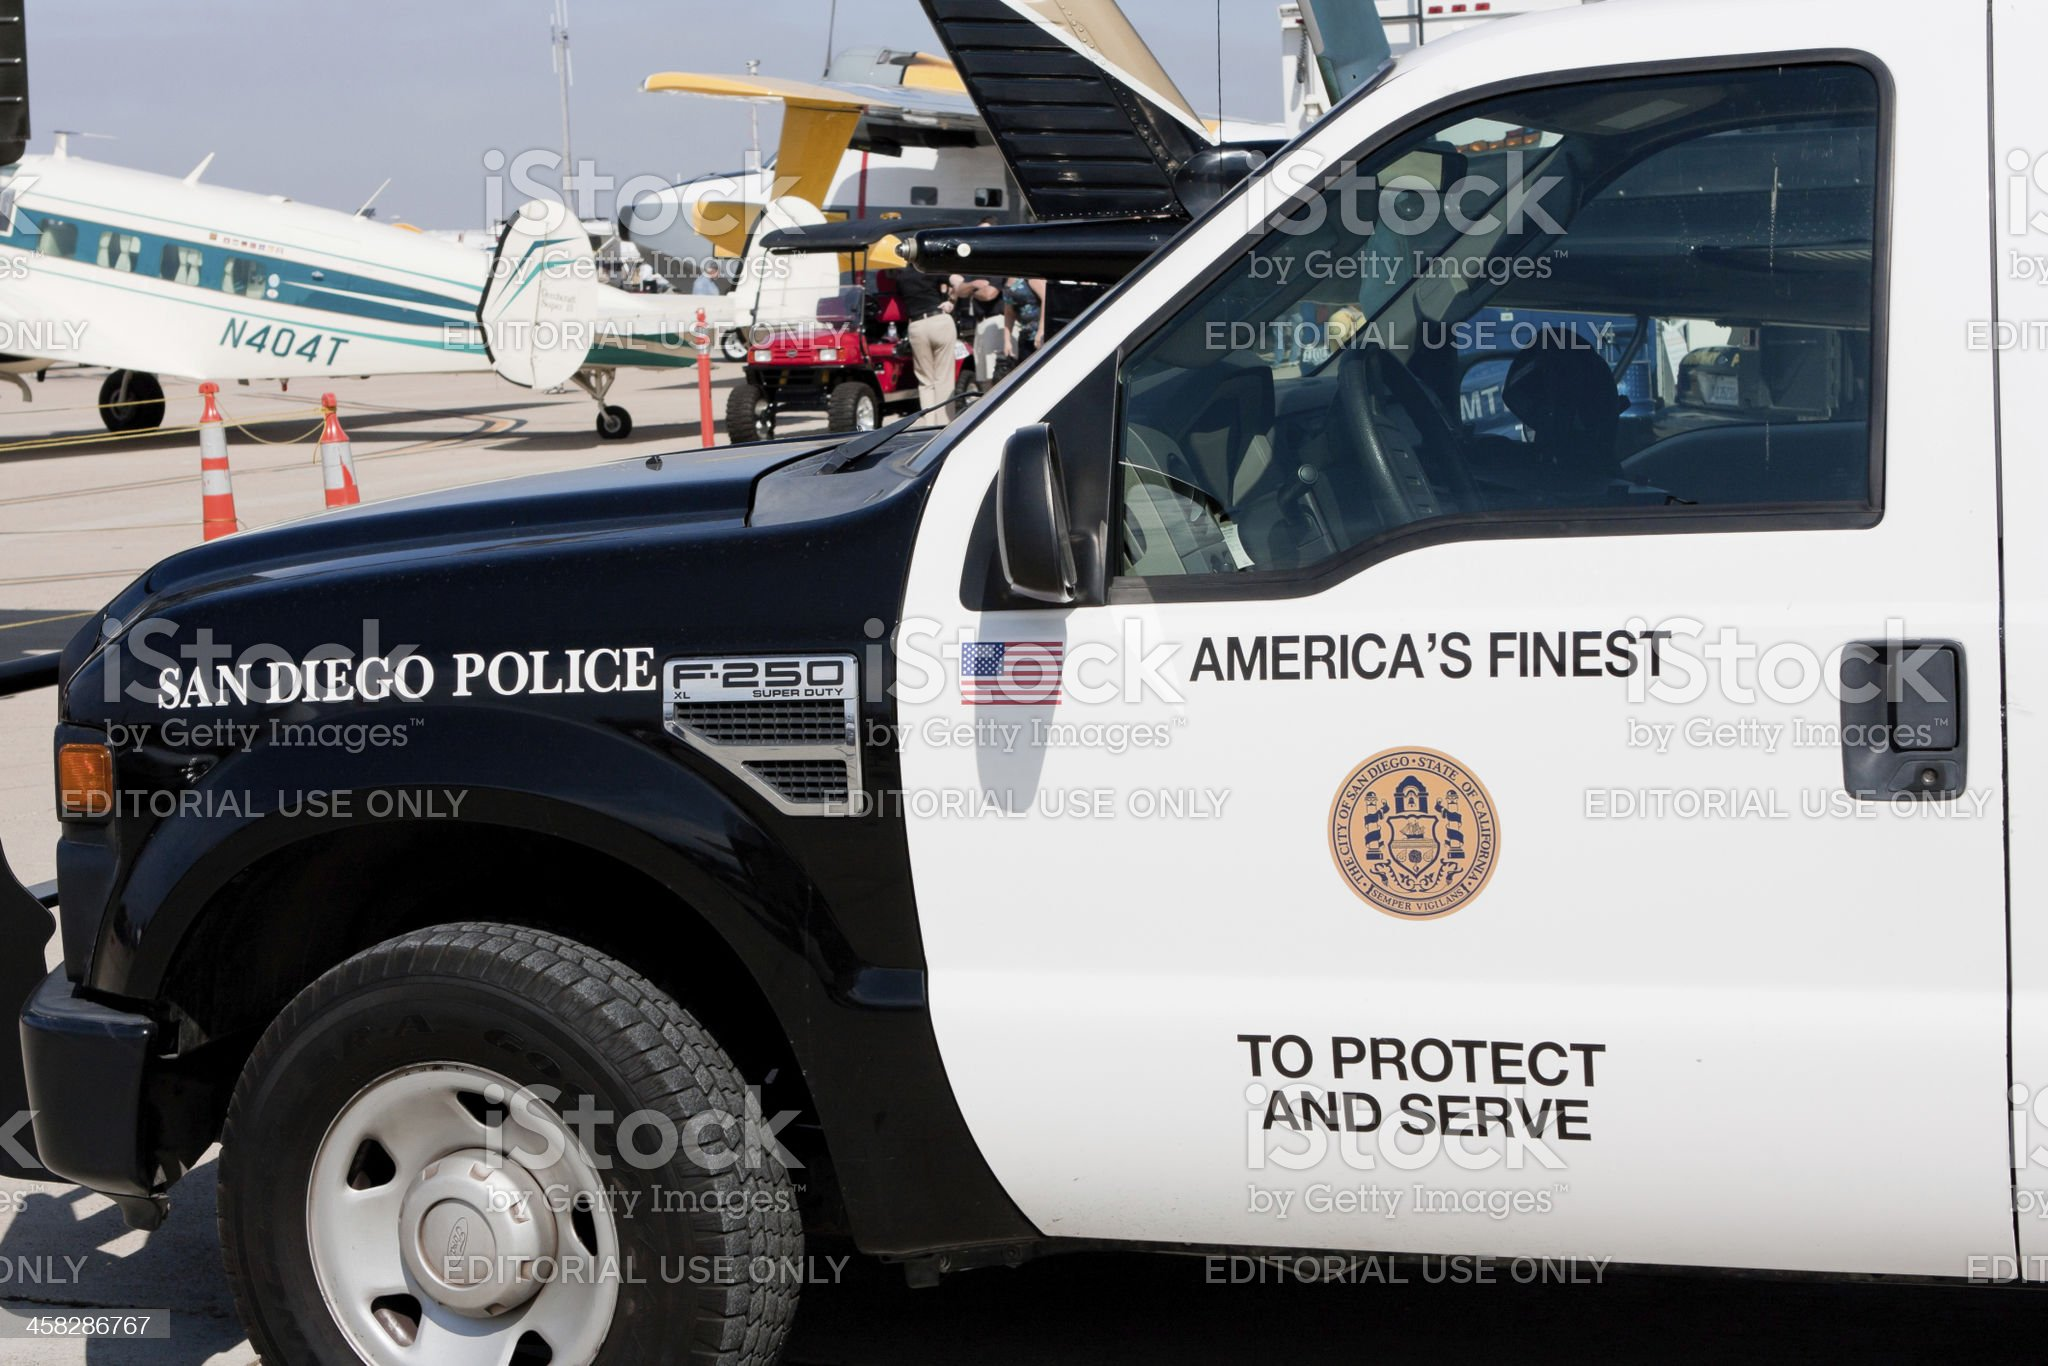 San Diego Police Truck royalty-free stock photo